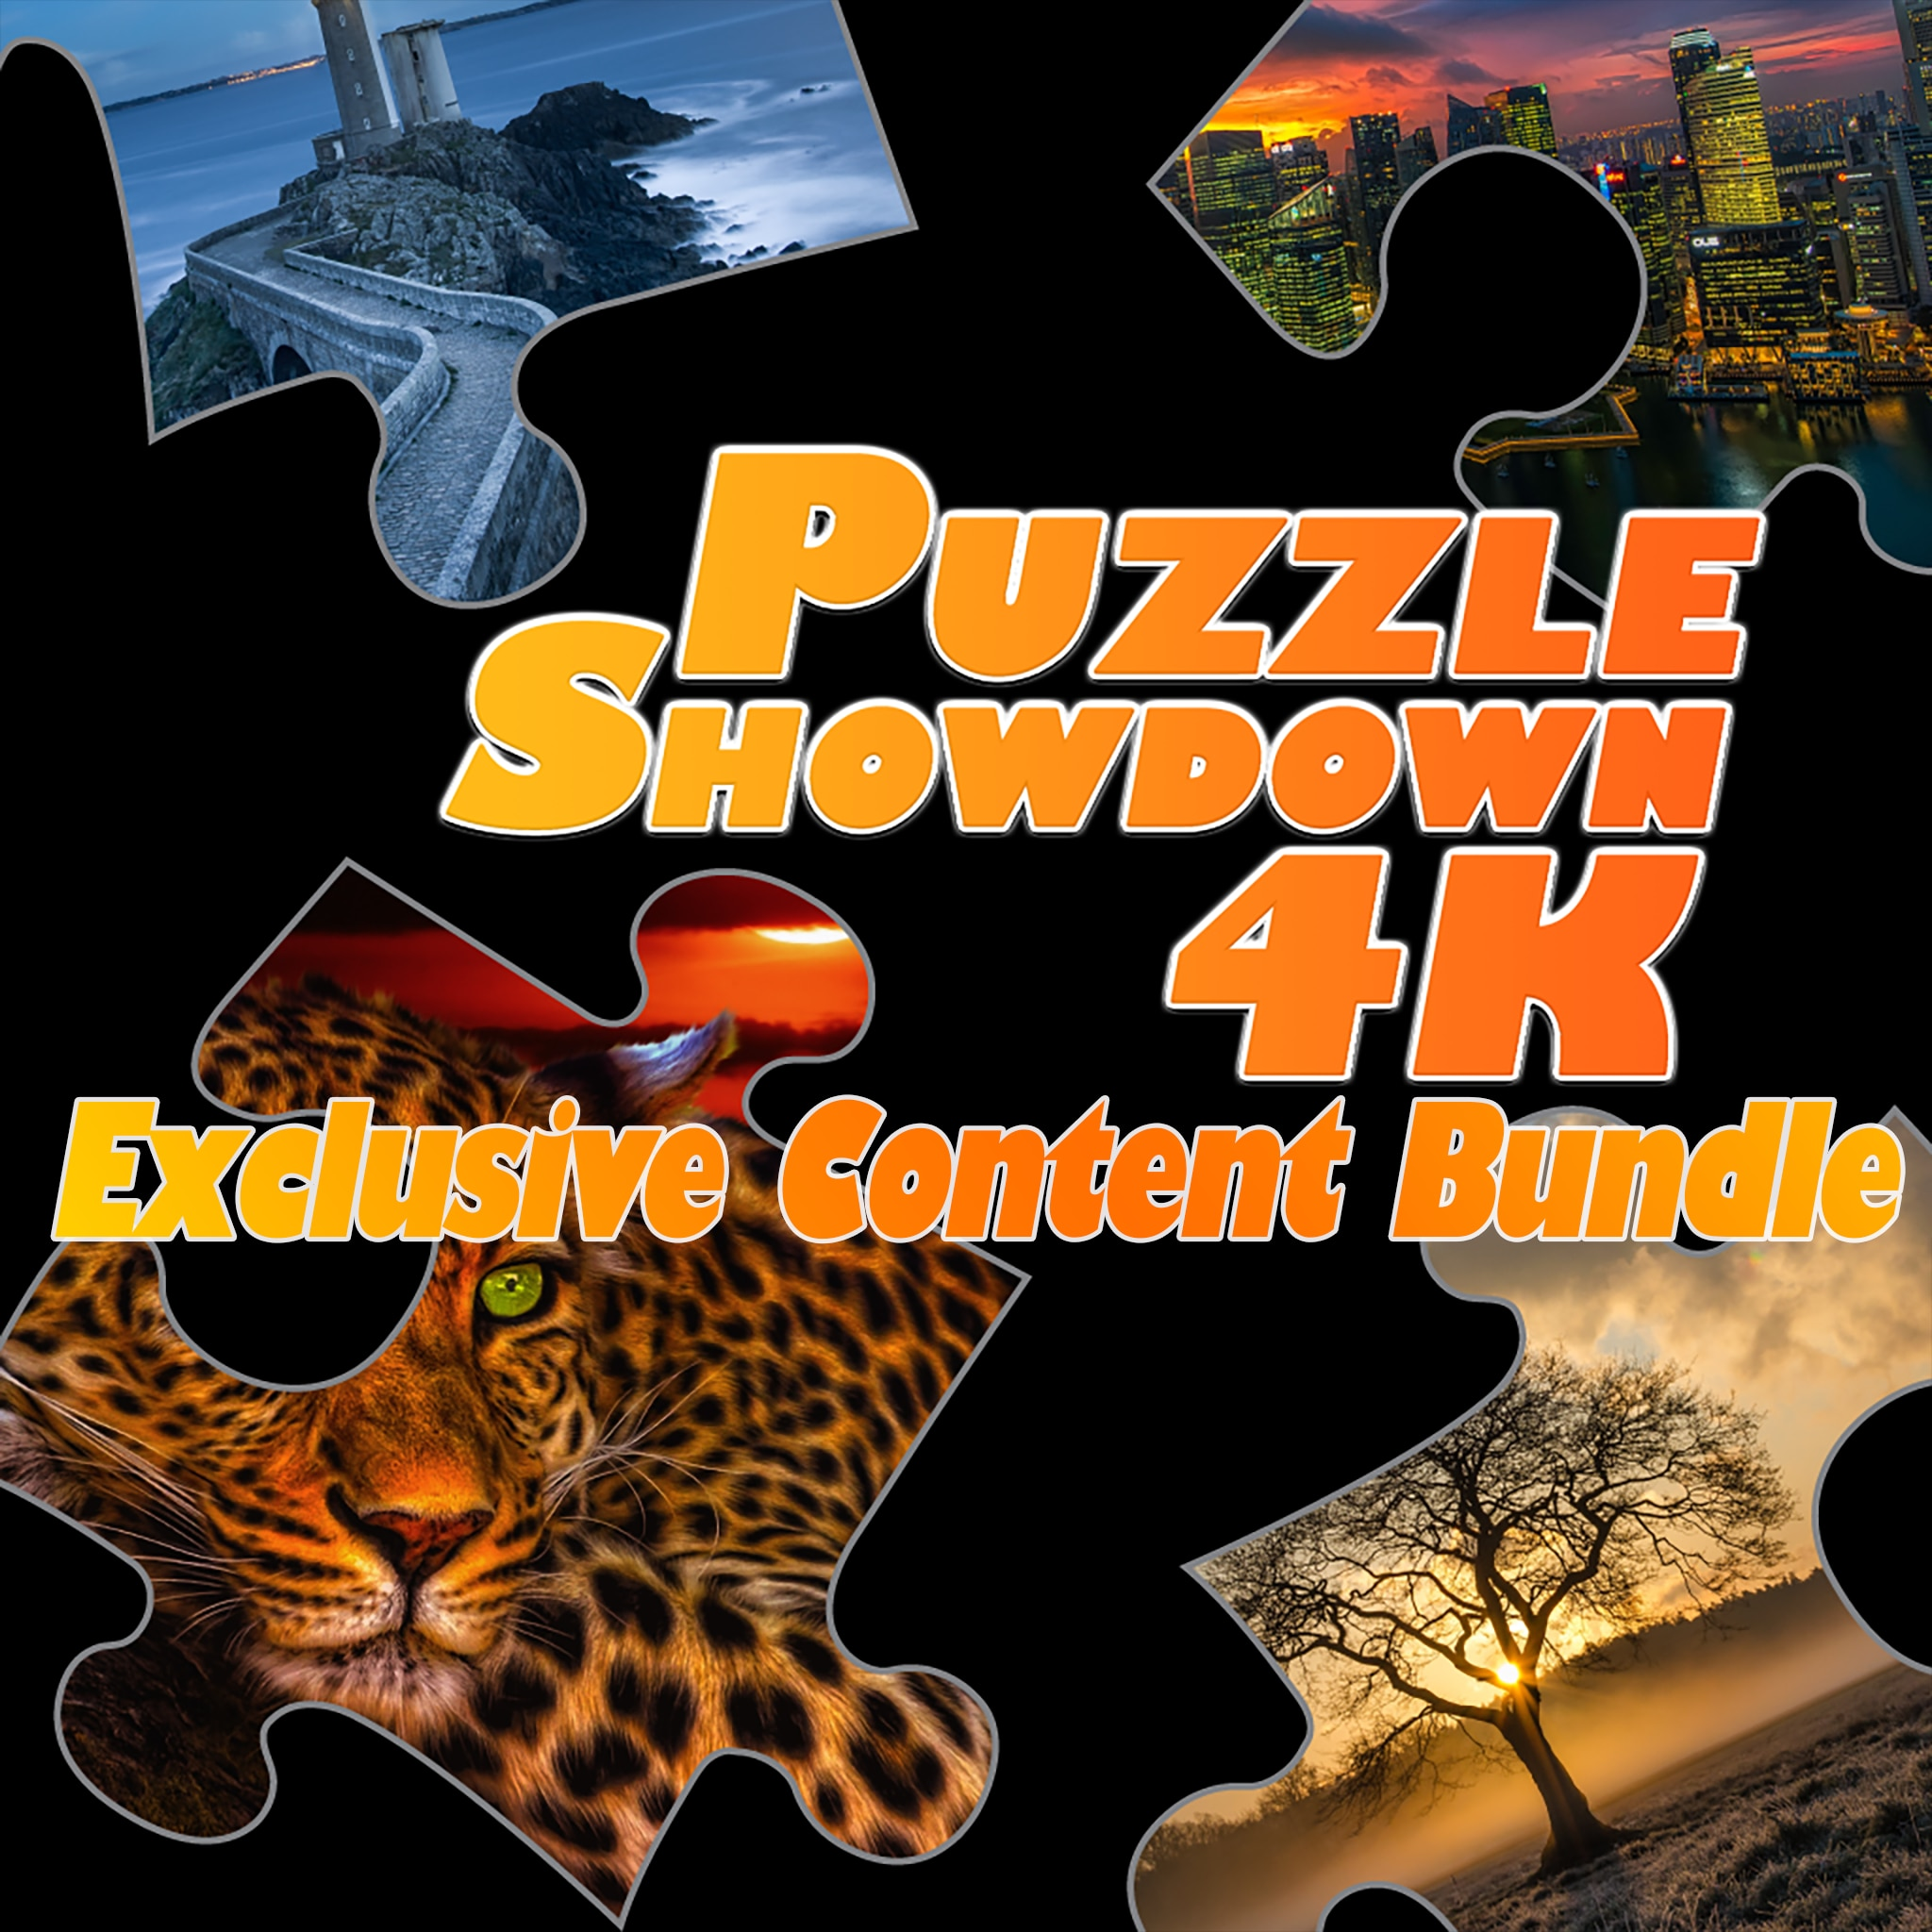 Puzzle Showdown 4K - Exclusive Content Bundle